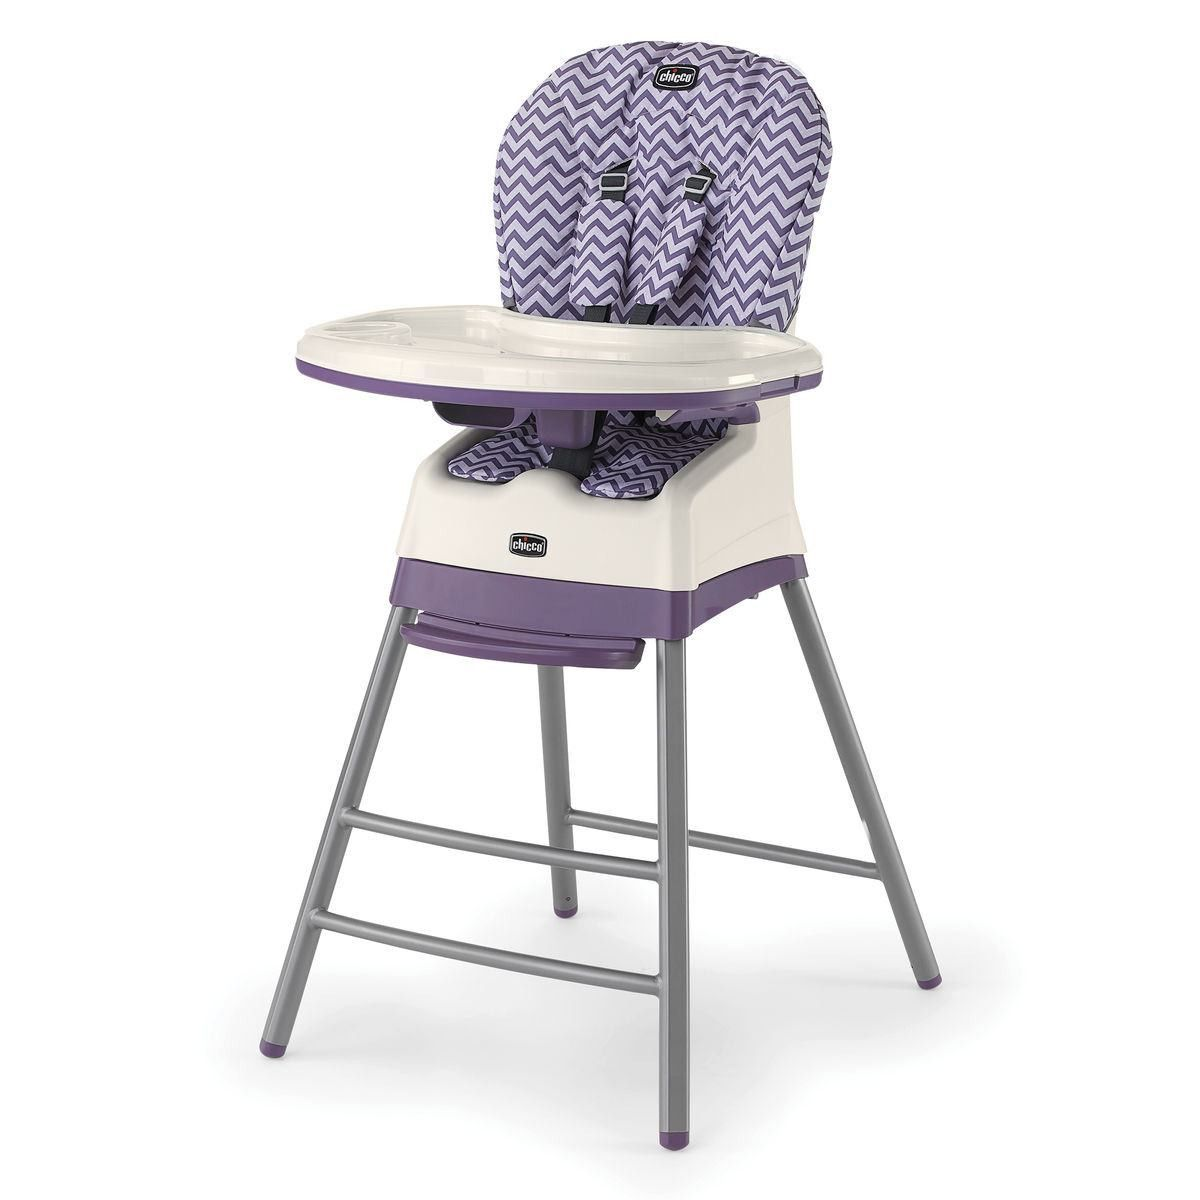 Highchair 2 In 1 Booster And Youth Stool All In One Product